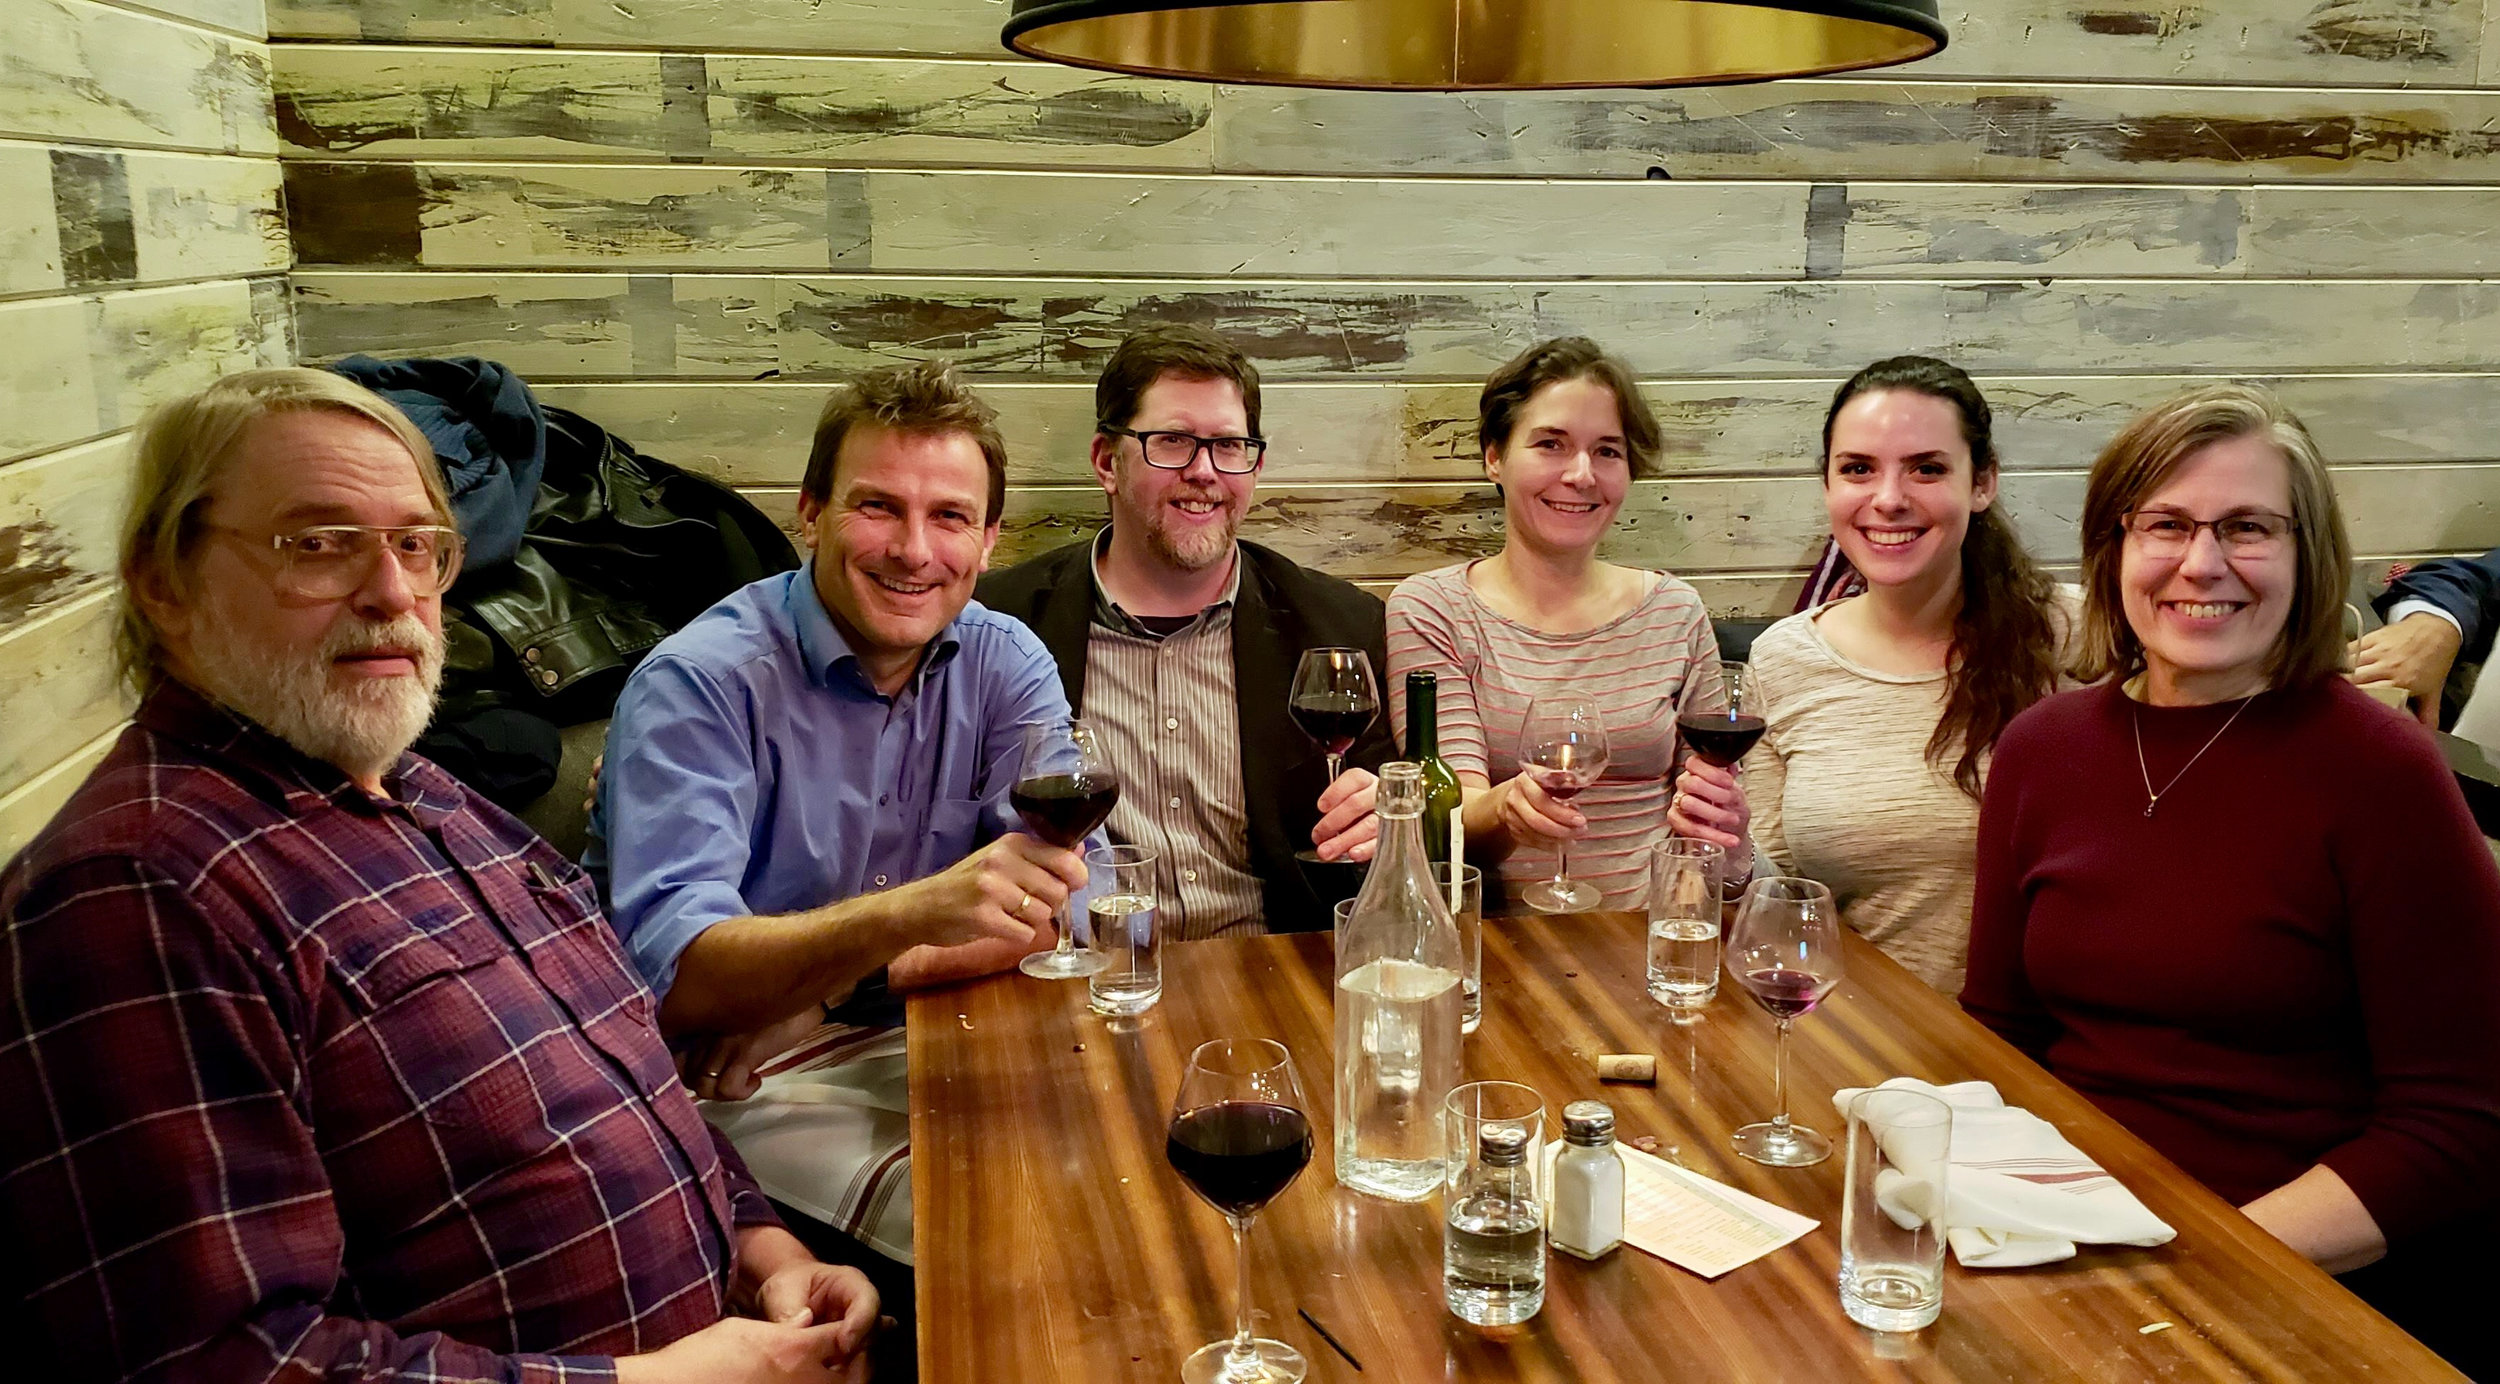 Dinner at Milts with Kevin Gibson, Ludo, Dan, Ginevra Clark, Rachael, and Linda Brazdil.